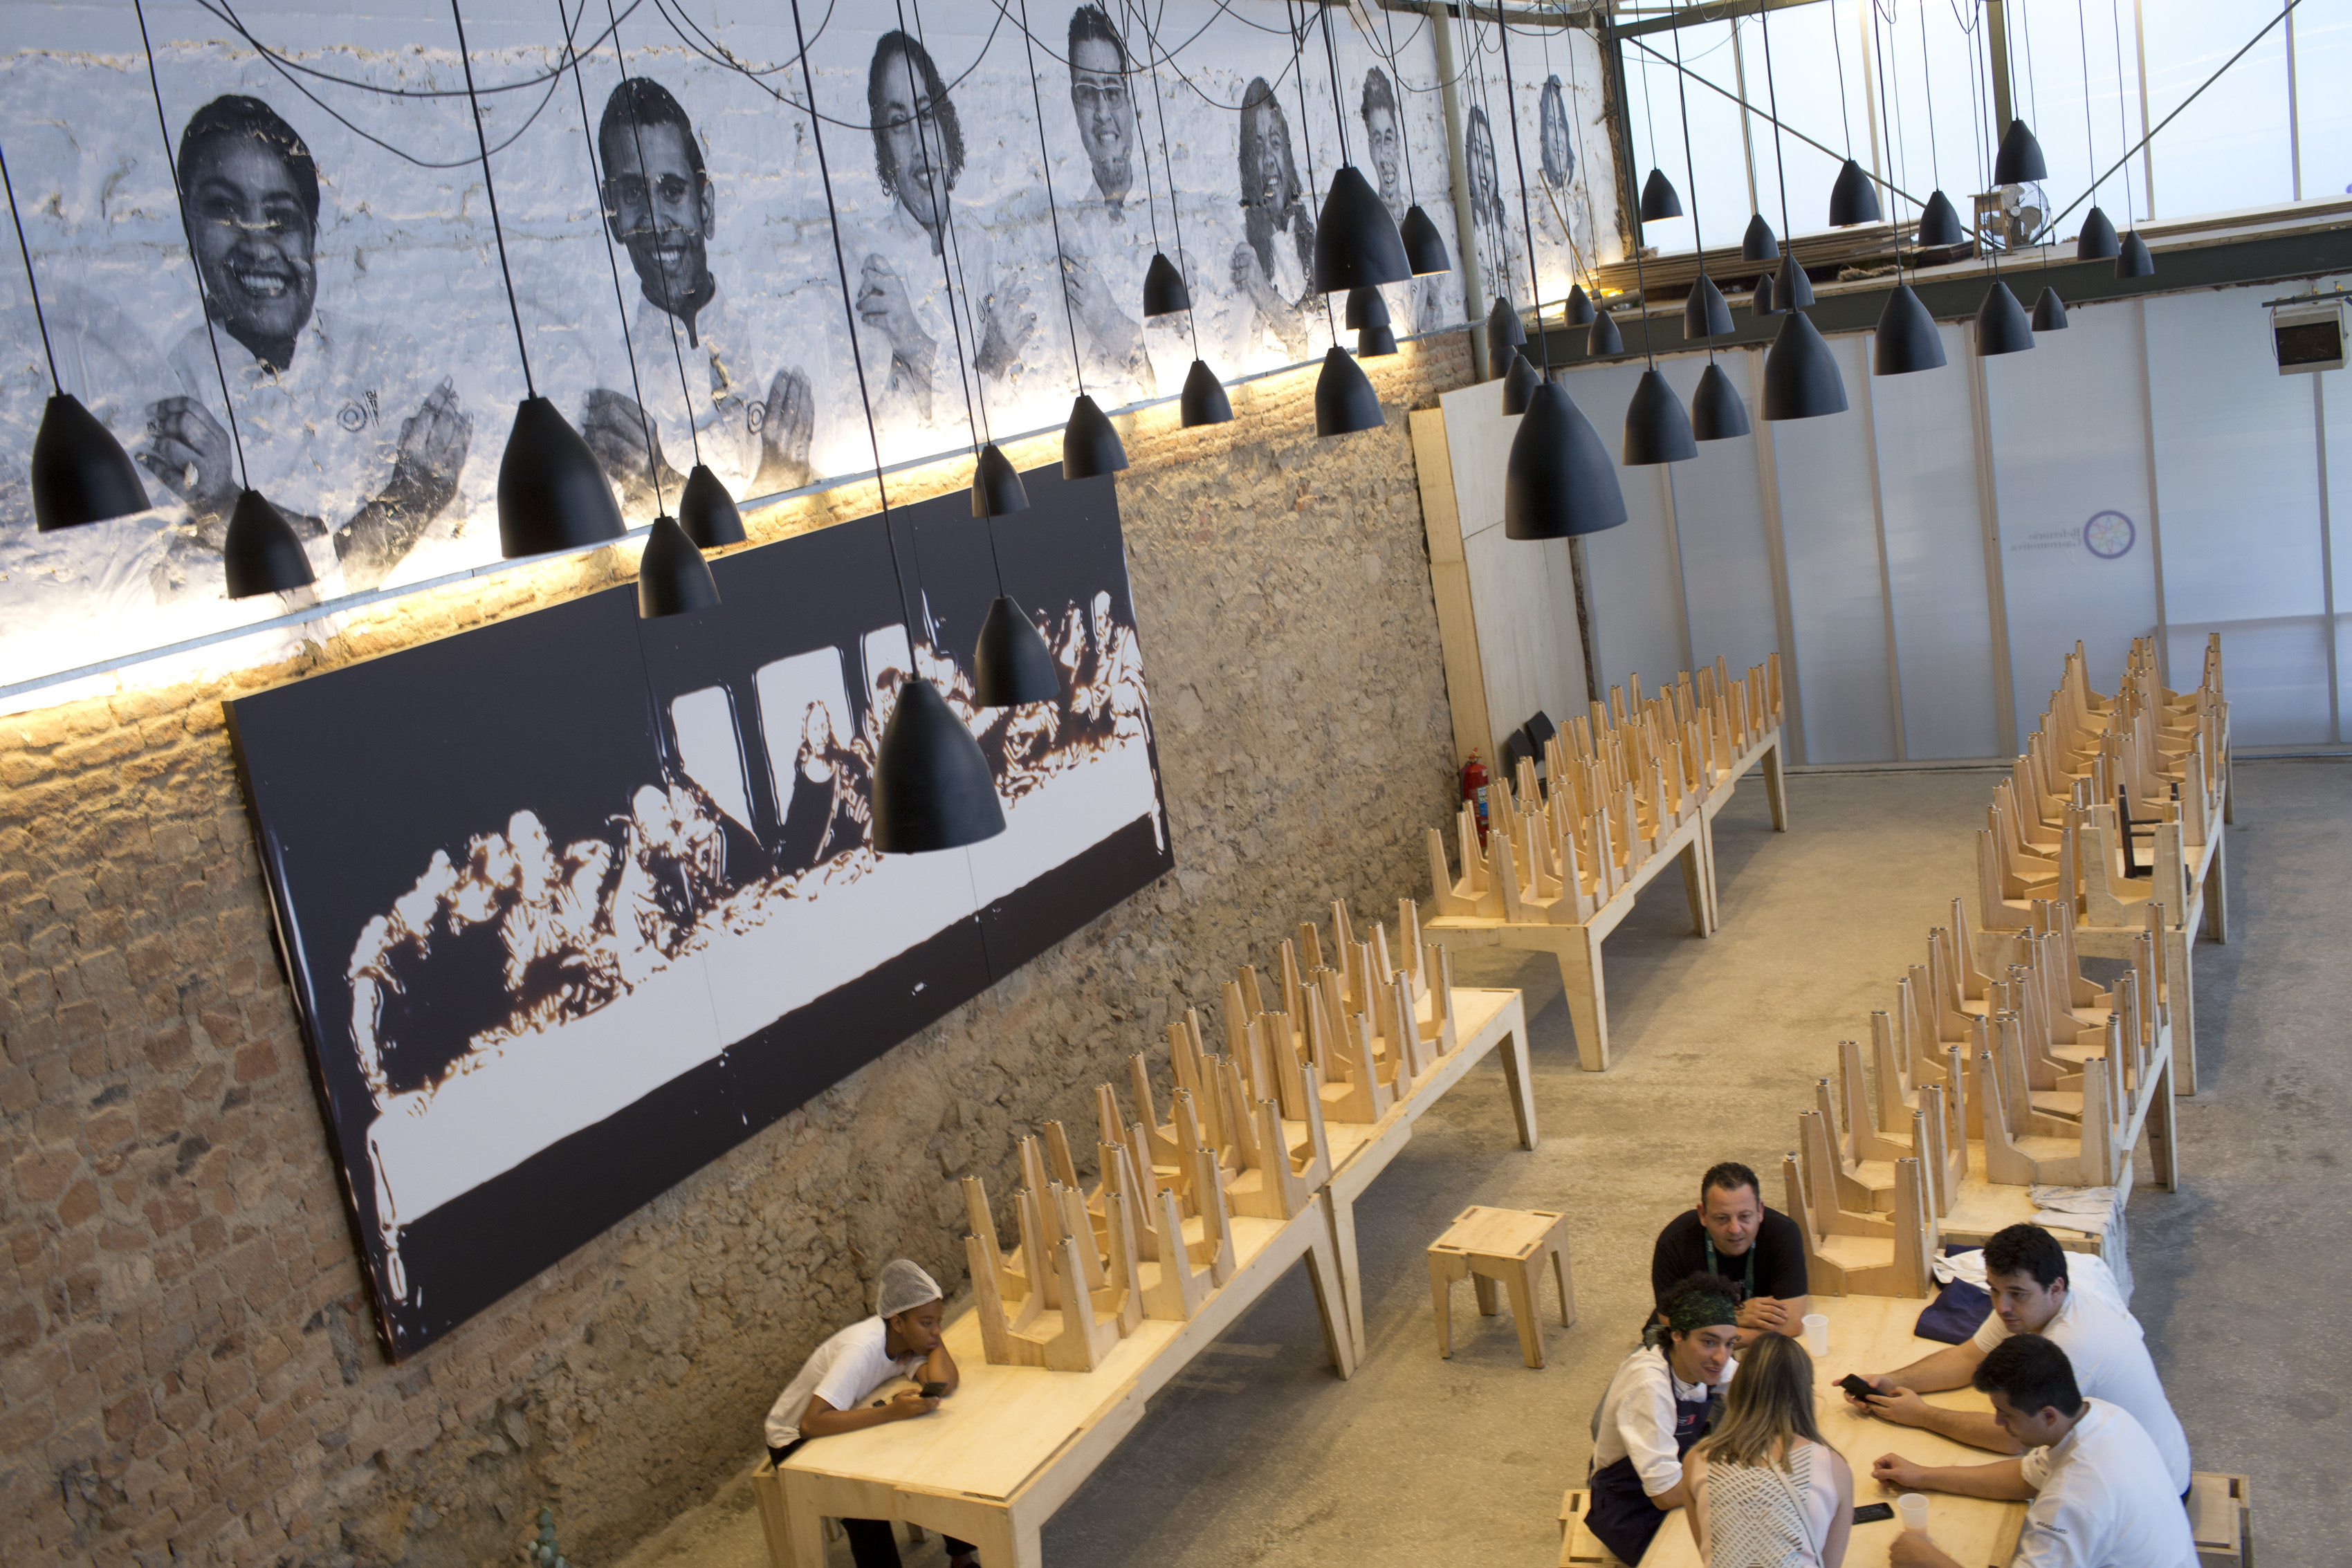 In this Aug. 14, 2016 photo, workers sit in the gourmet soup kitchen Refettorio Gastromotiva in Rio de Janeiro, Brazil. Using leftover ingredients from Olympic caterers and other local partners, Italian chef Massimo Bottura created the gourmet soup kitche